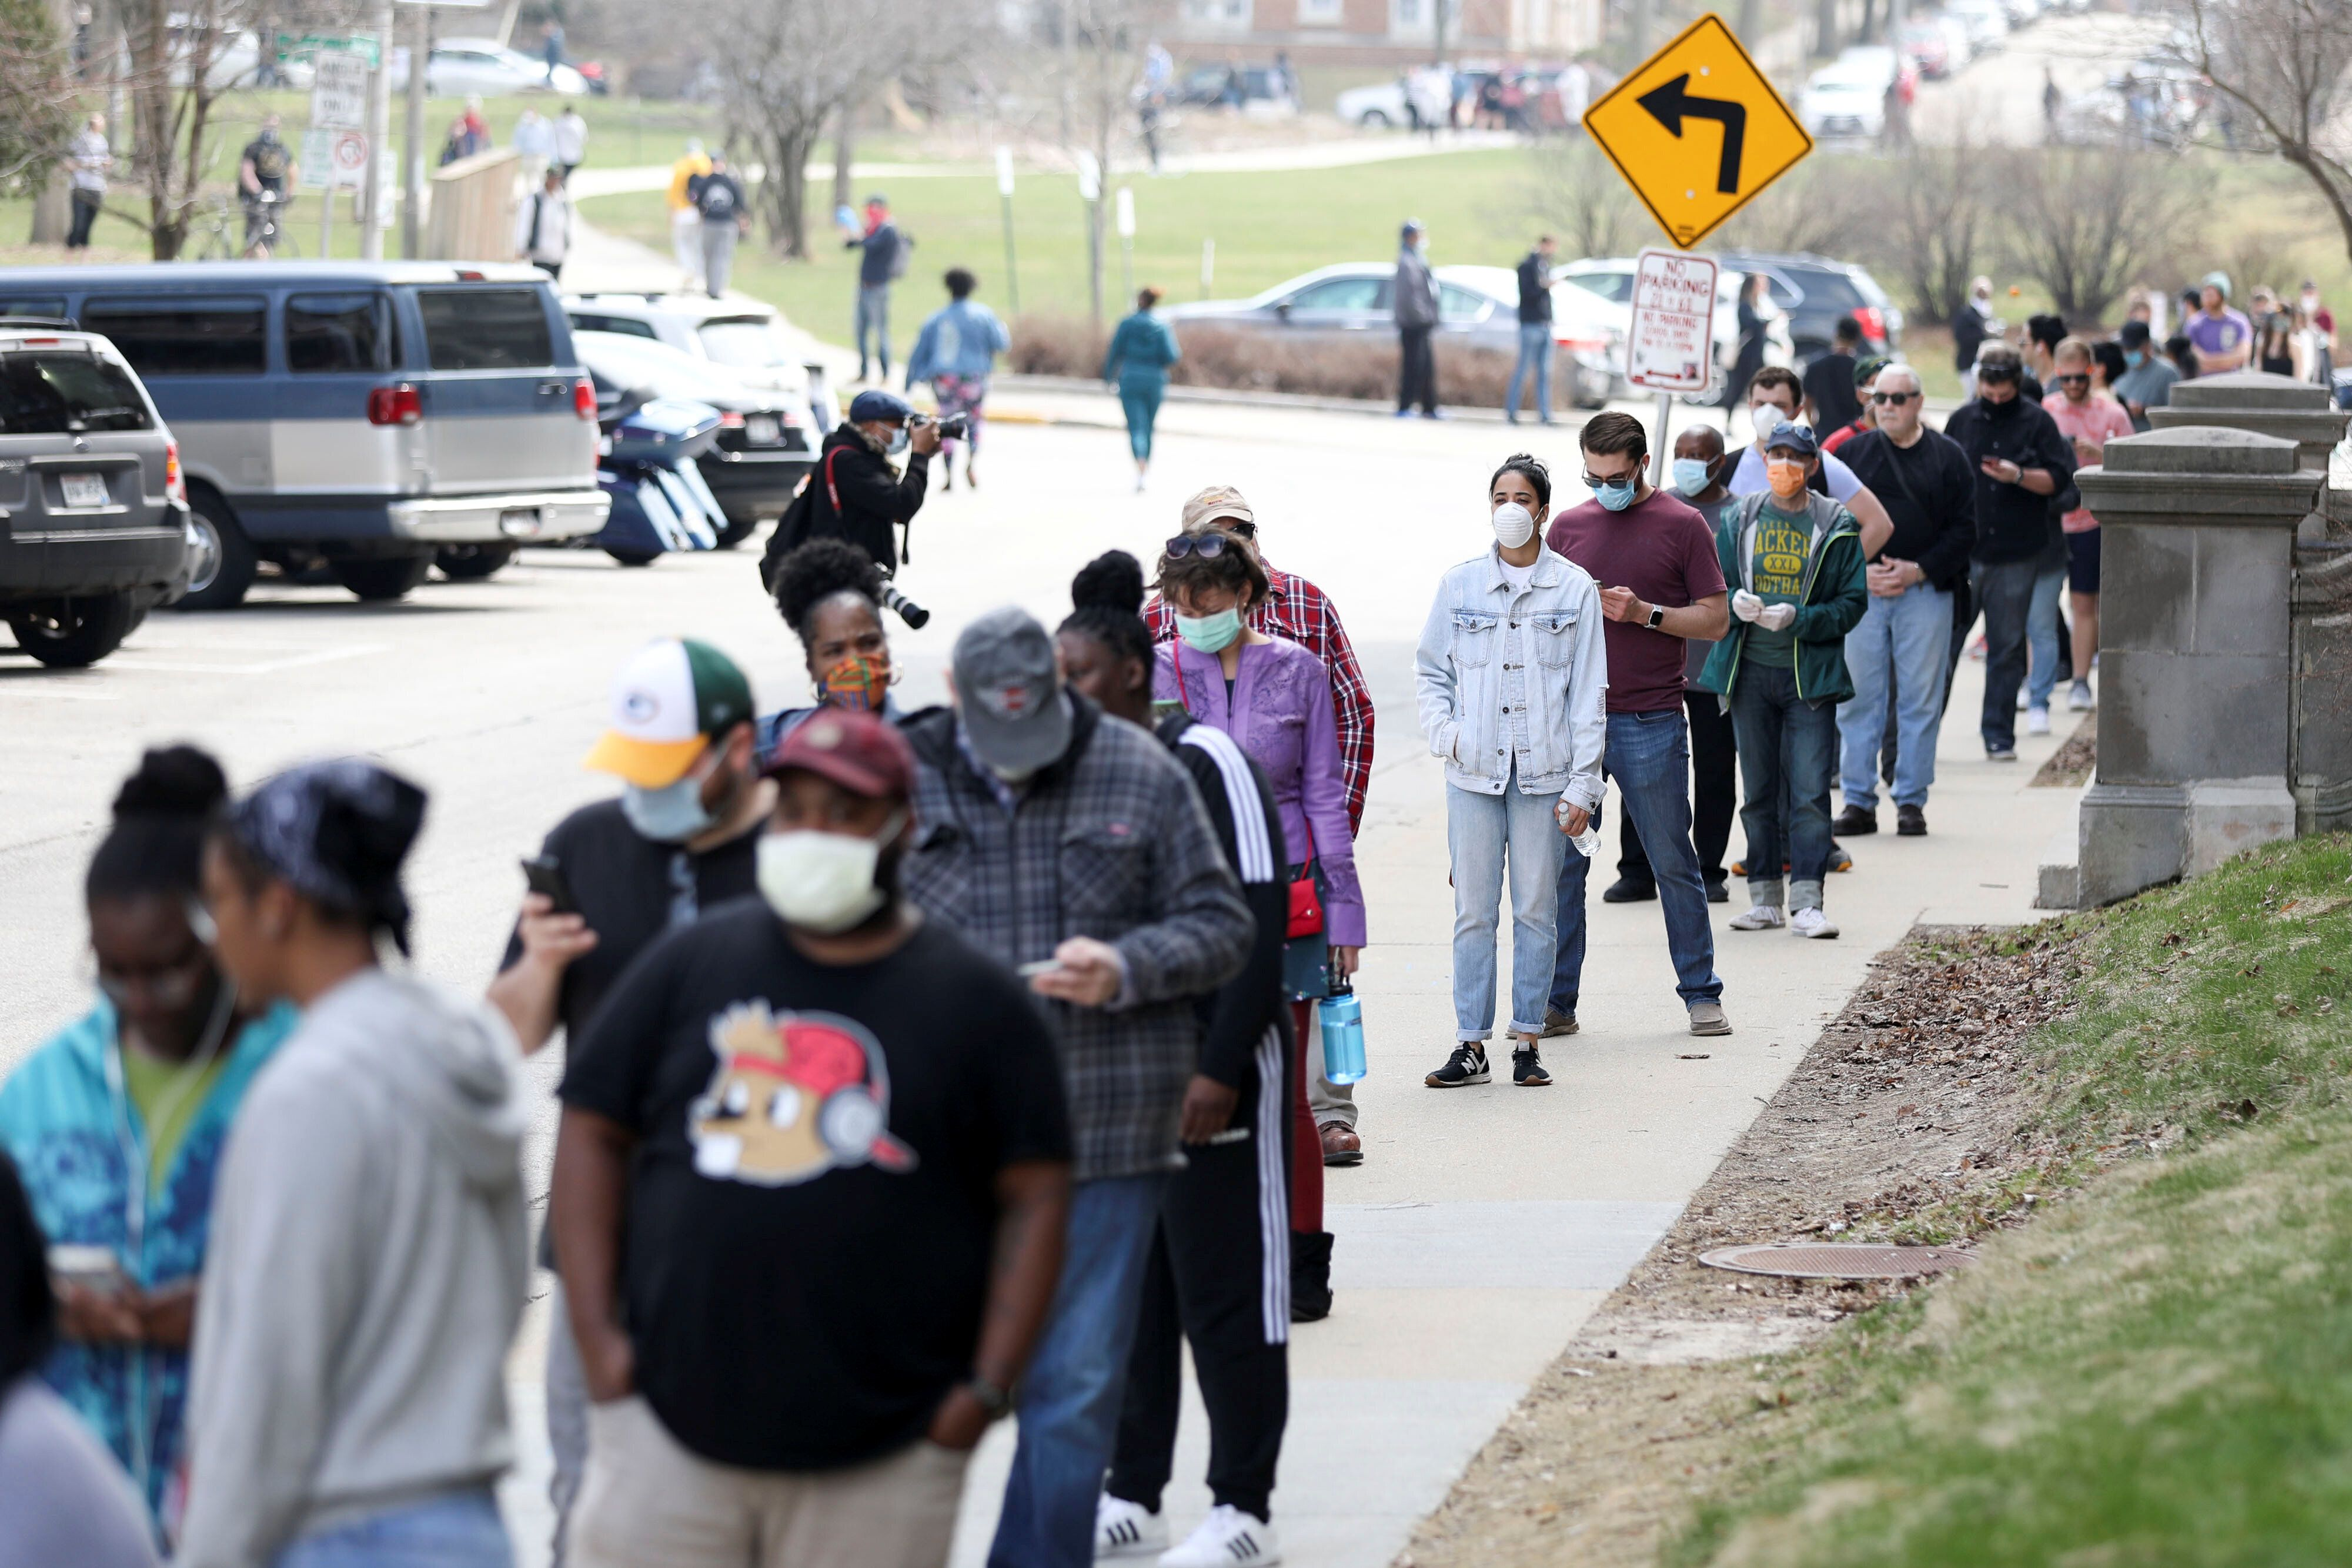 Voters waiting in line in Milwaukee for the primary on April 7. The state had trouble finding poll workers so had to consolid